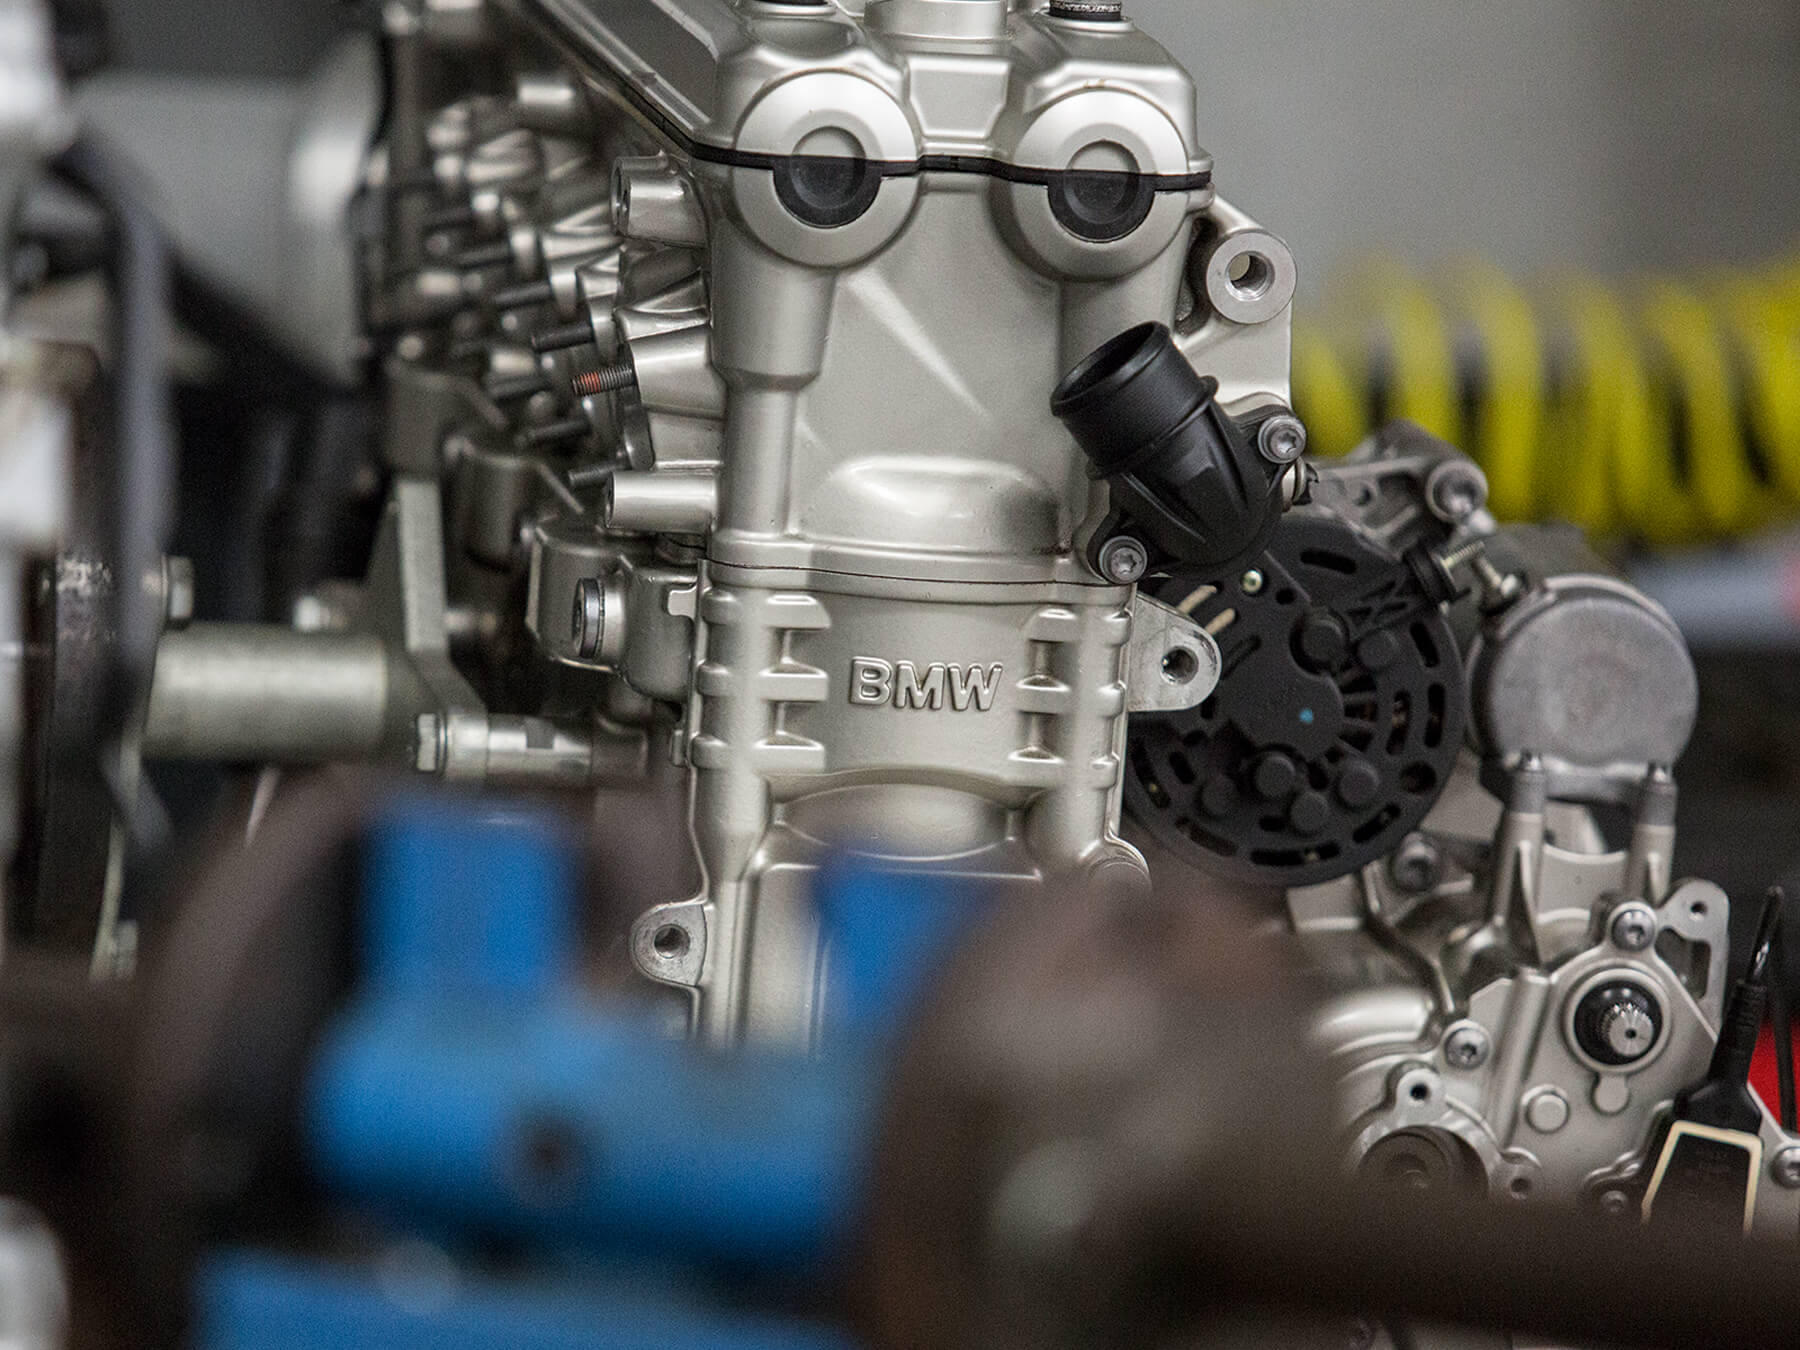 Closeup on BMW motorcycle engine